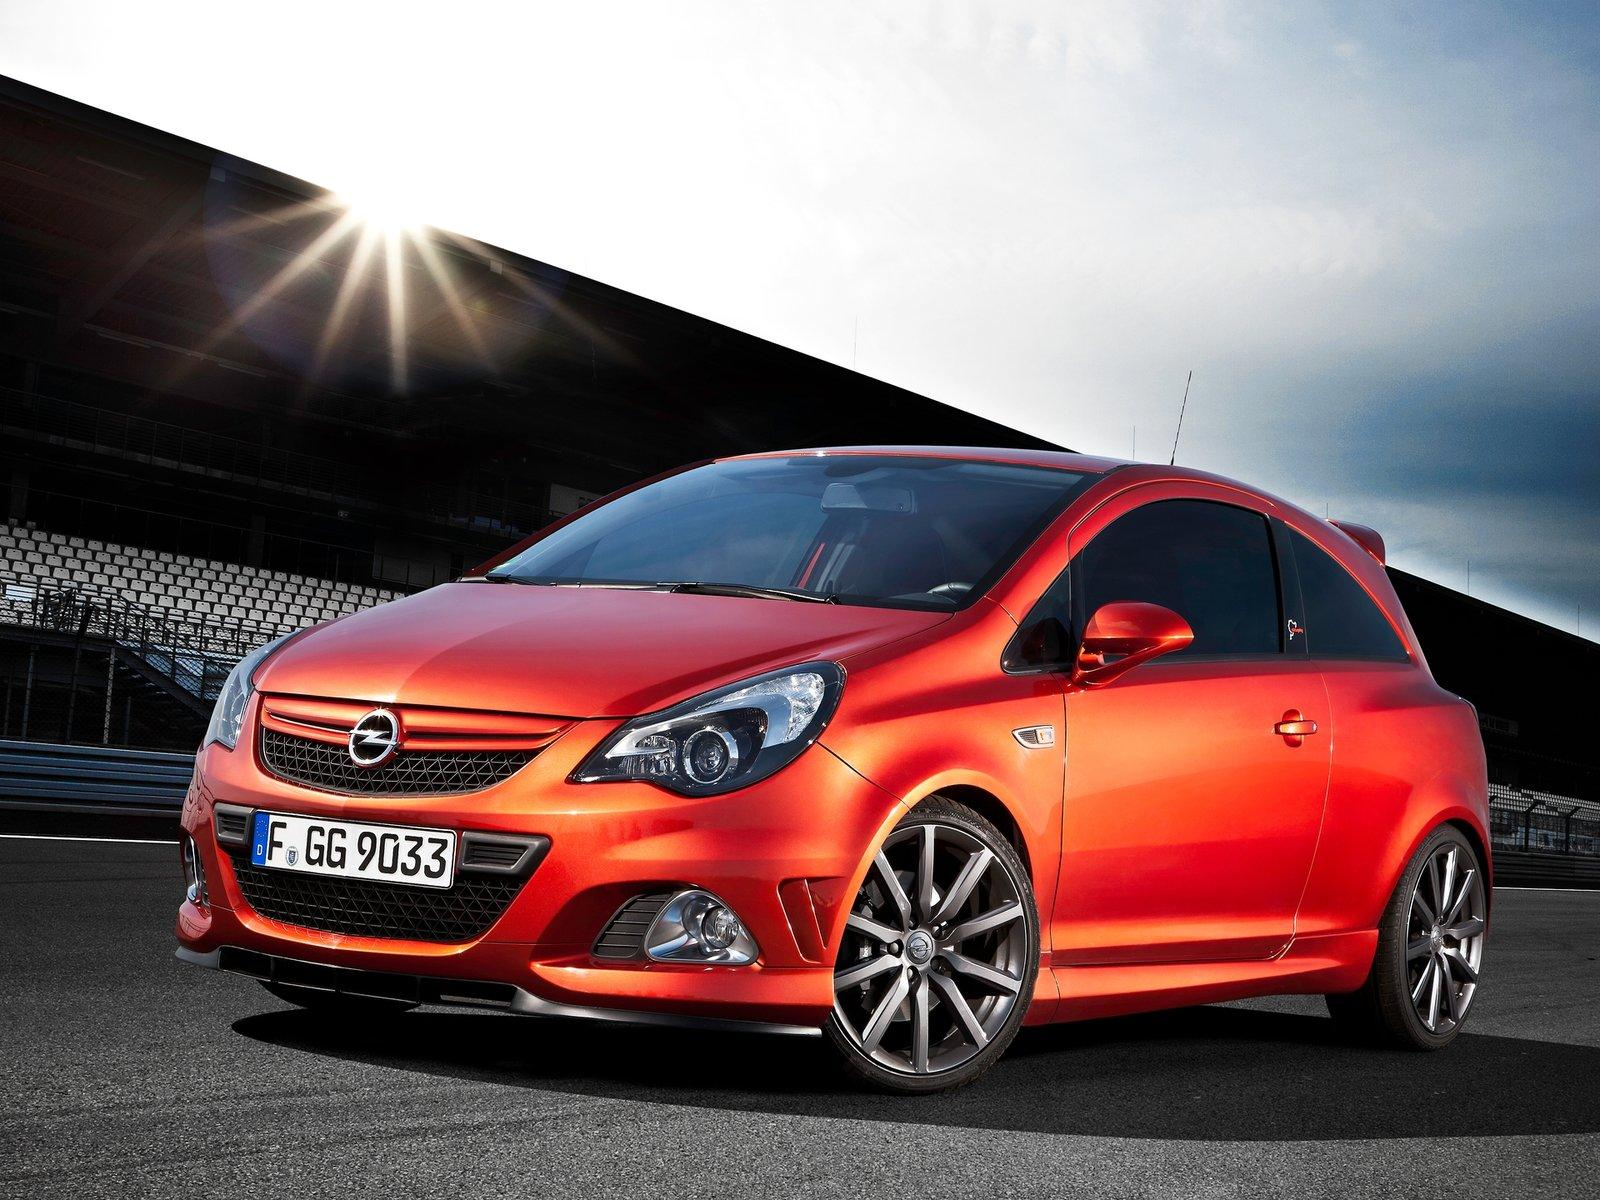 1600x1200 - Vauxhall Wallpapers 28